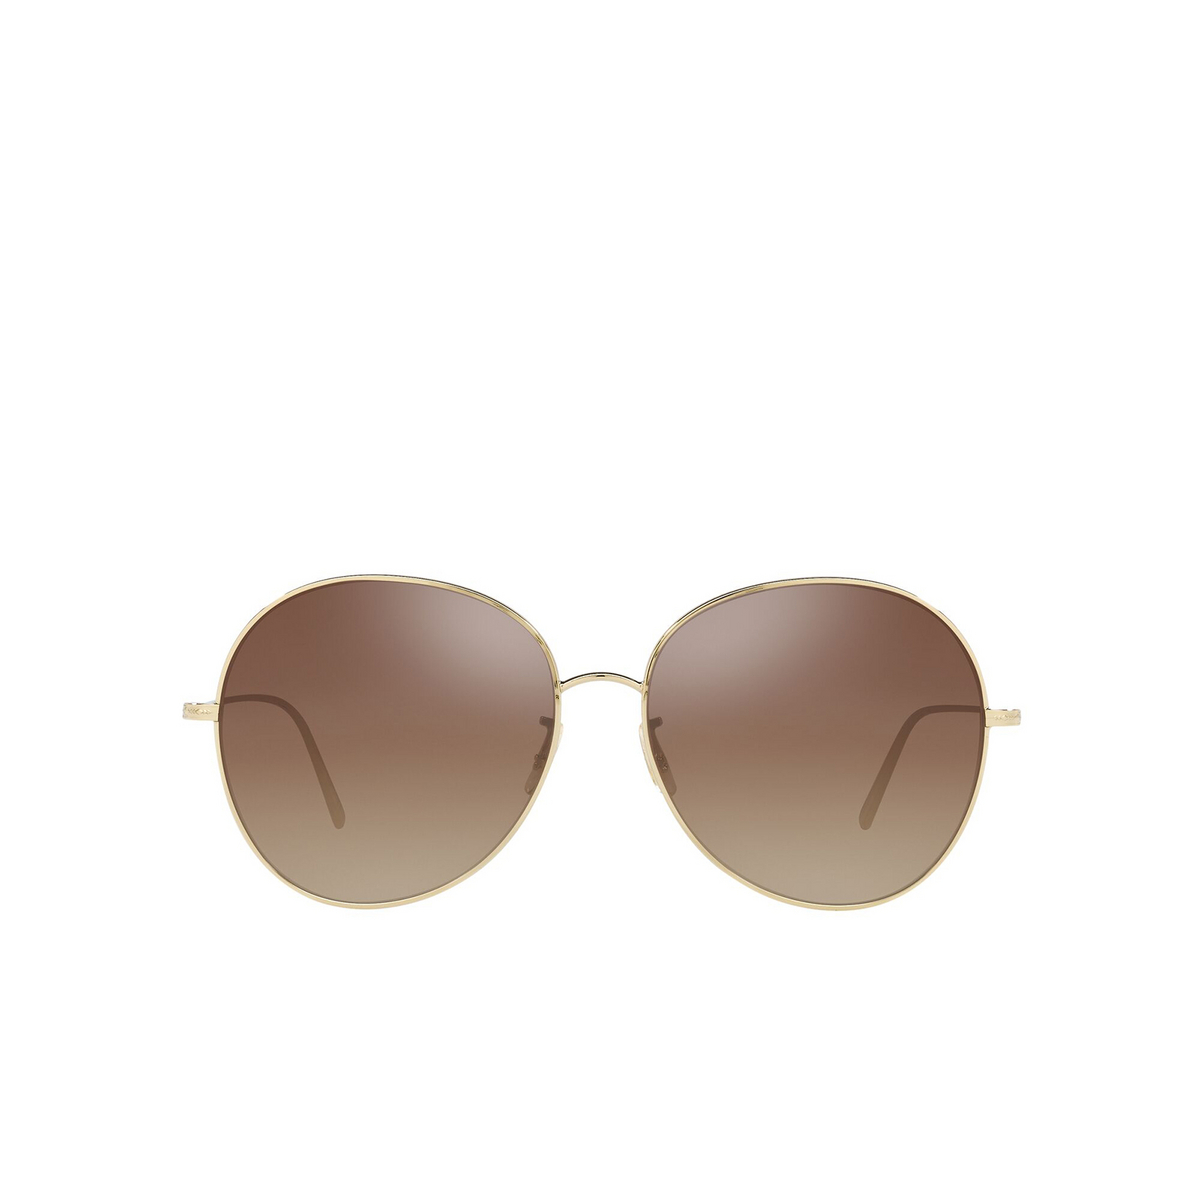 Oliver Peoples® Butterfly Sunglasses: Ysela OV1289S color Soft Gold 5035Q1 - front view.